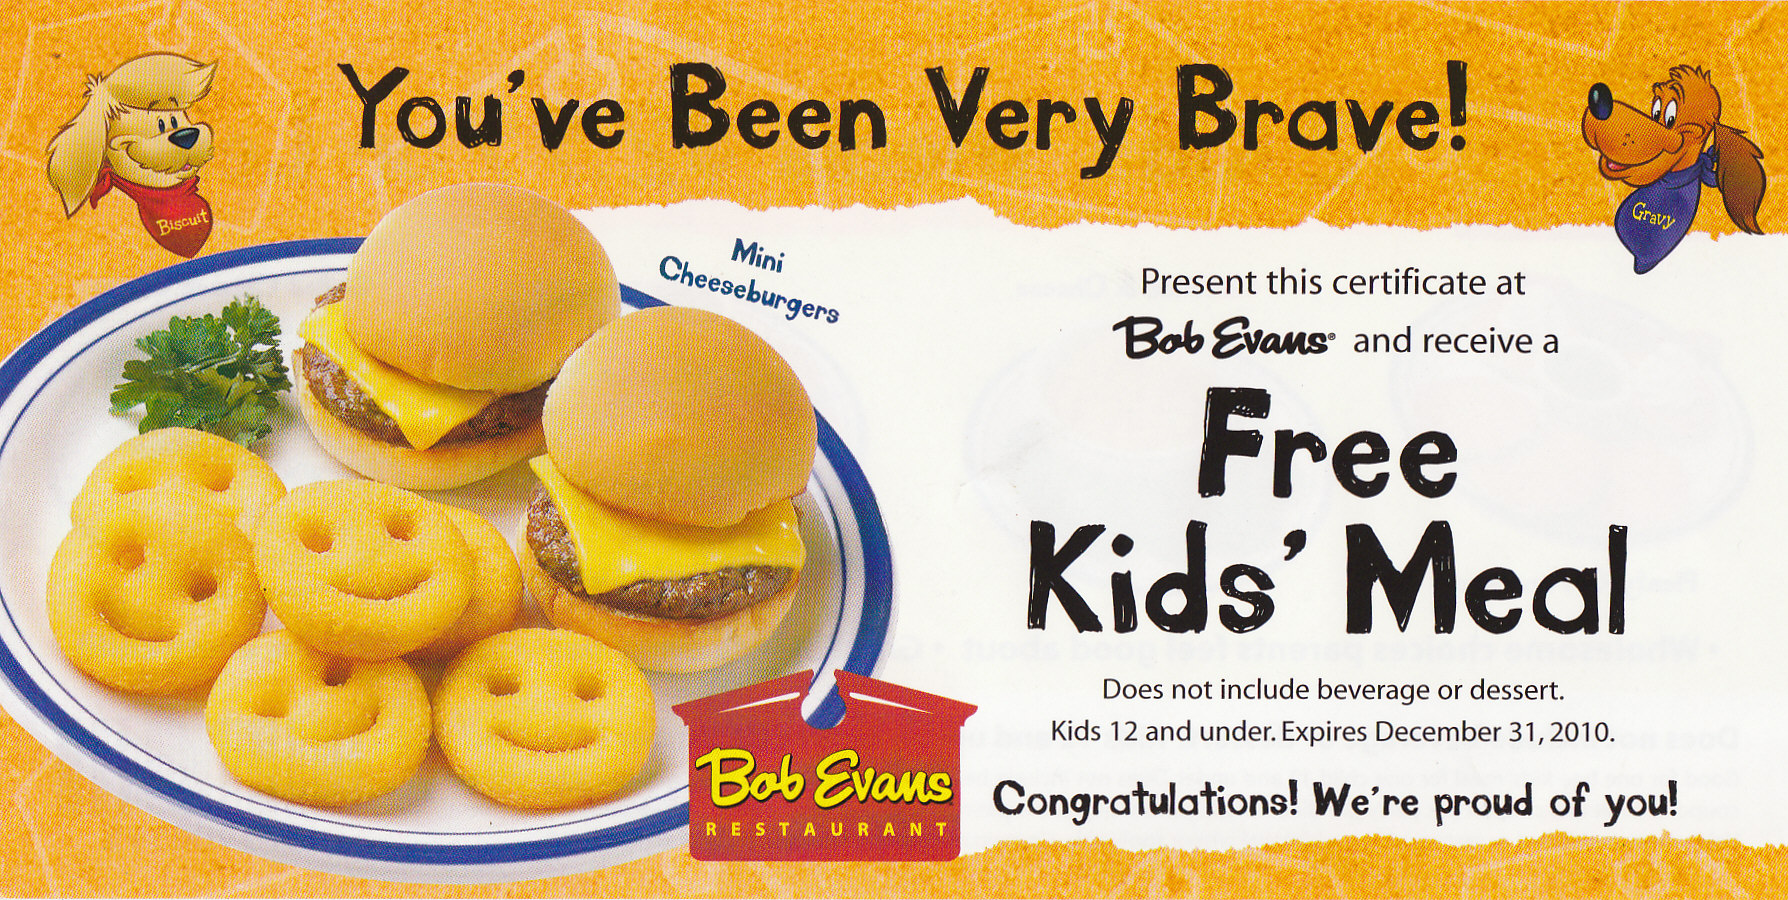 Giveaway Coupons For Free Bob Evans Kids Meal Hillbilly